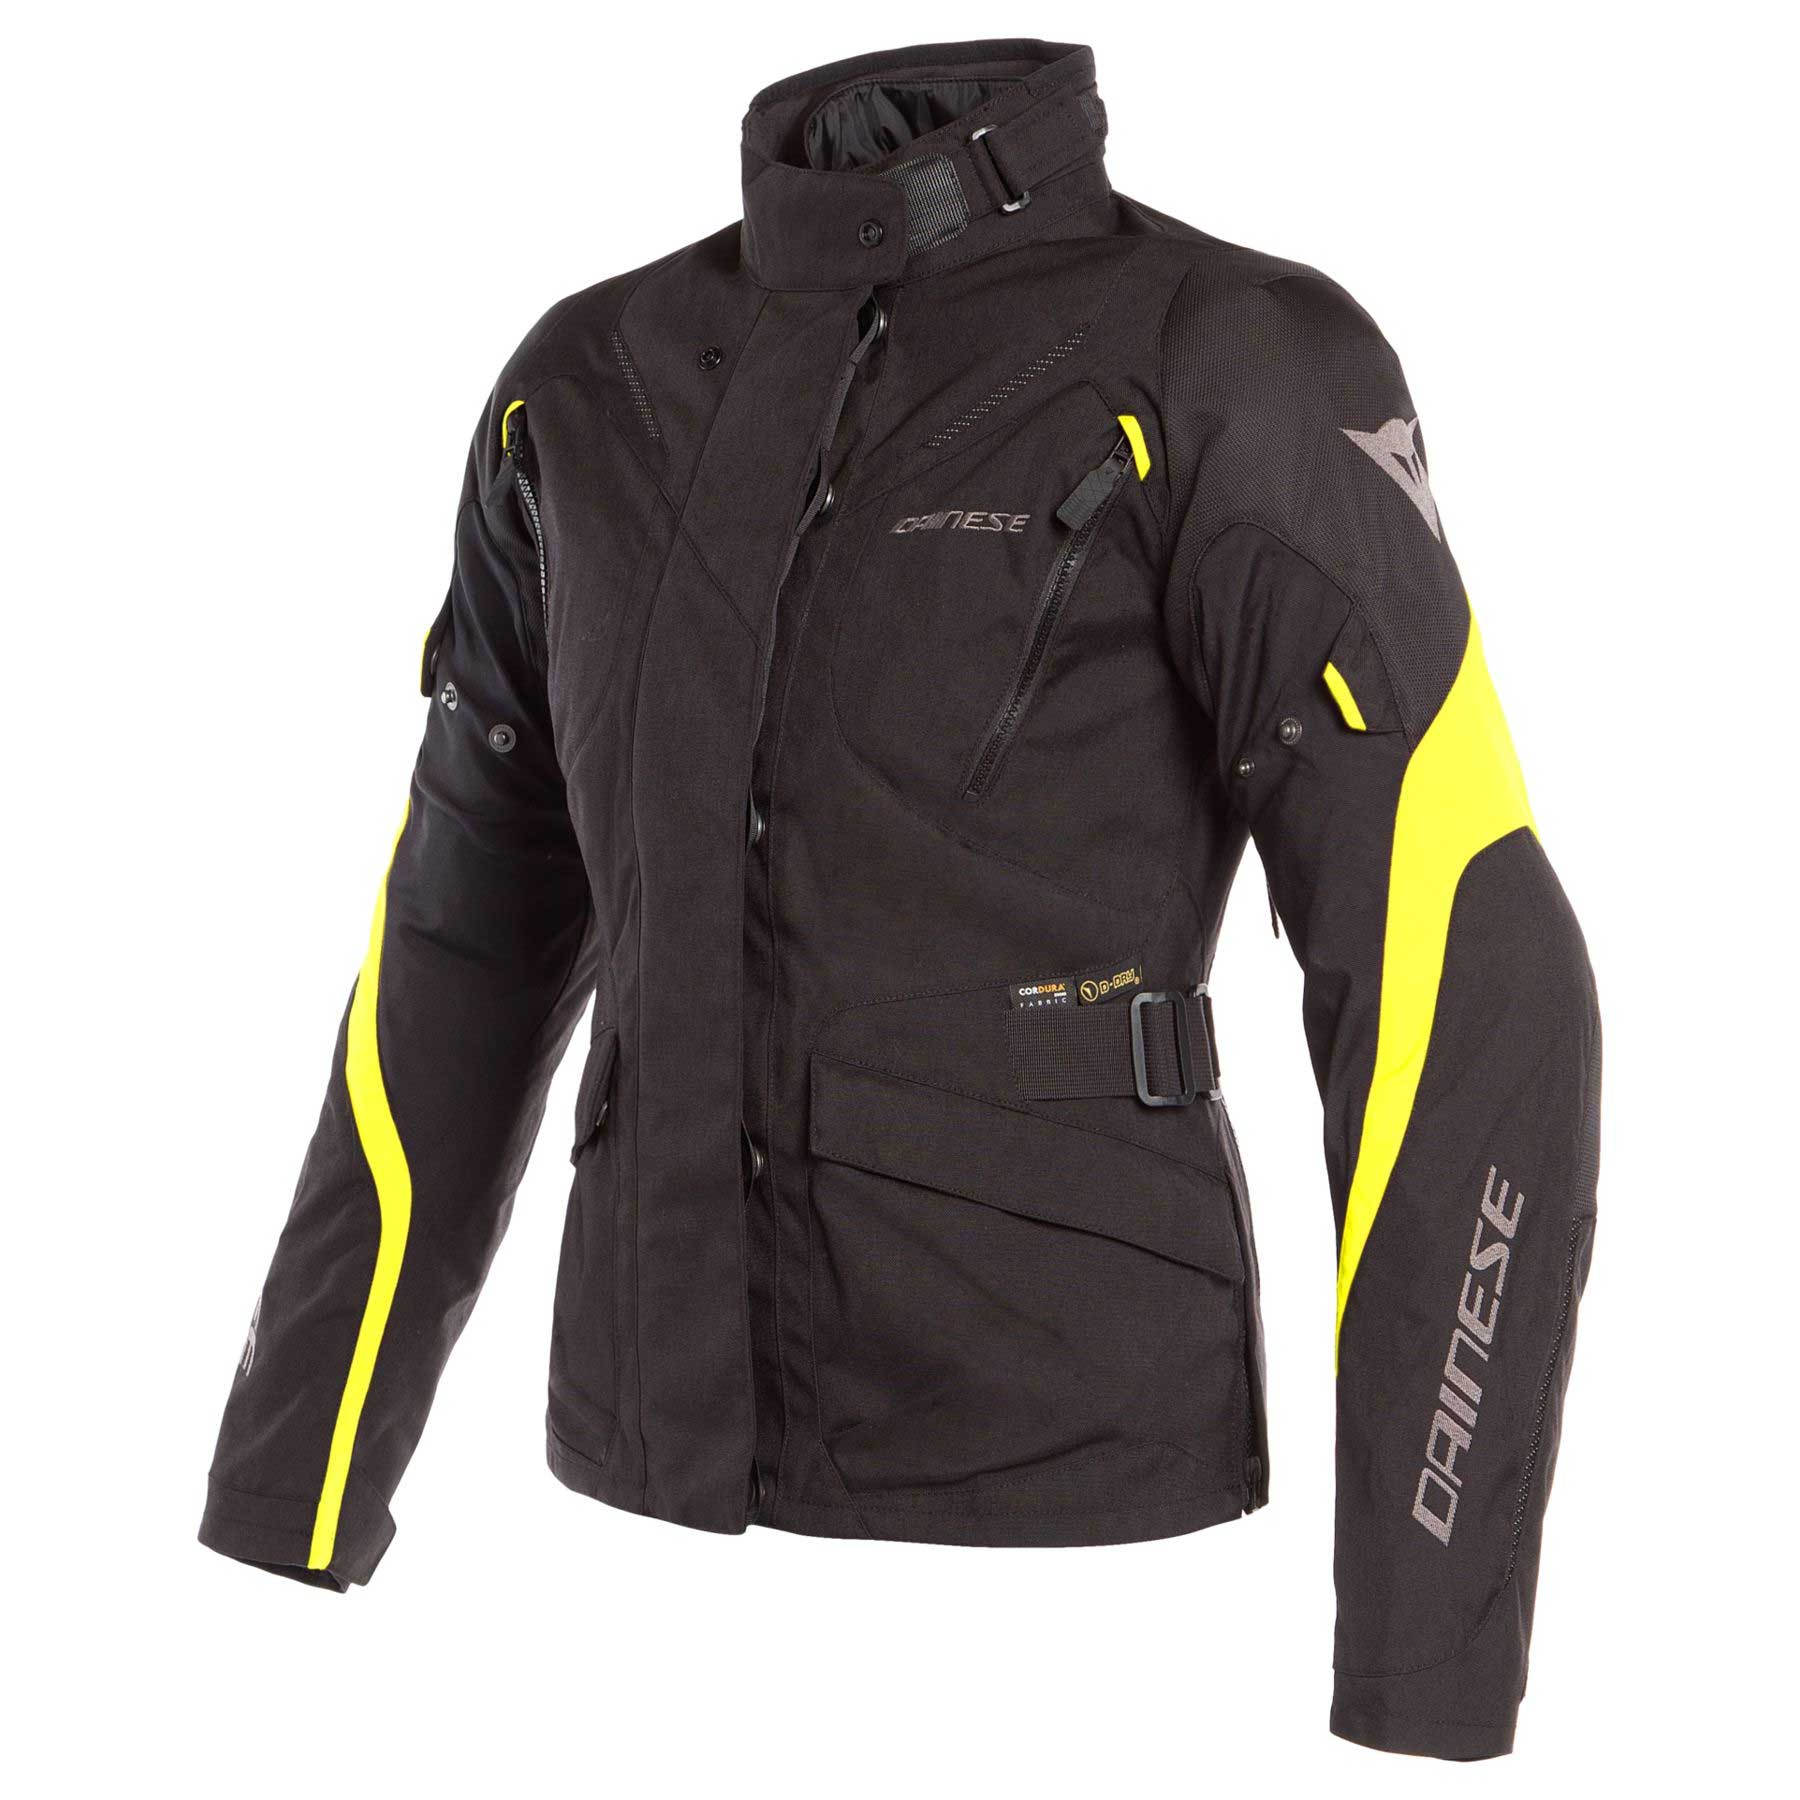 Dainese Giacca Tempest 2 D-dry Donna Giallo Nero